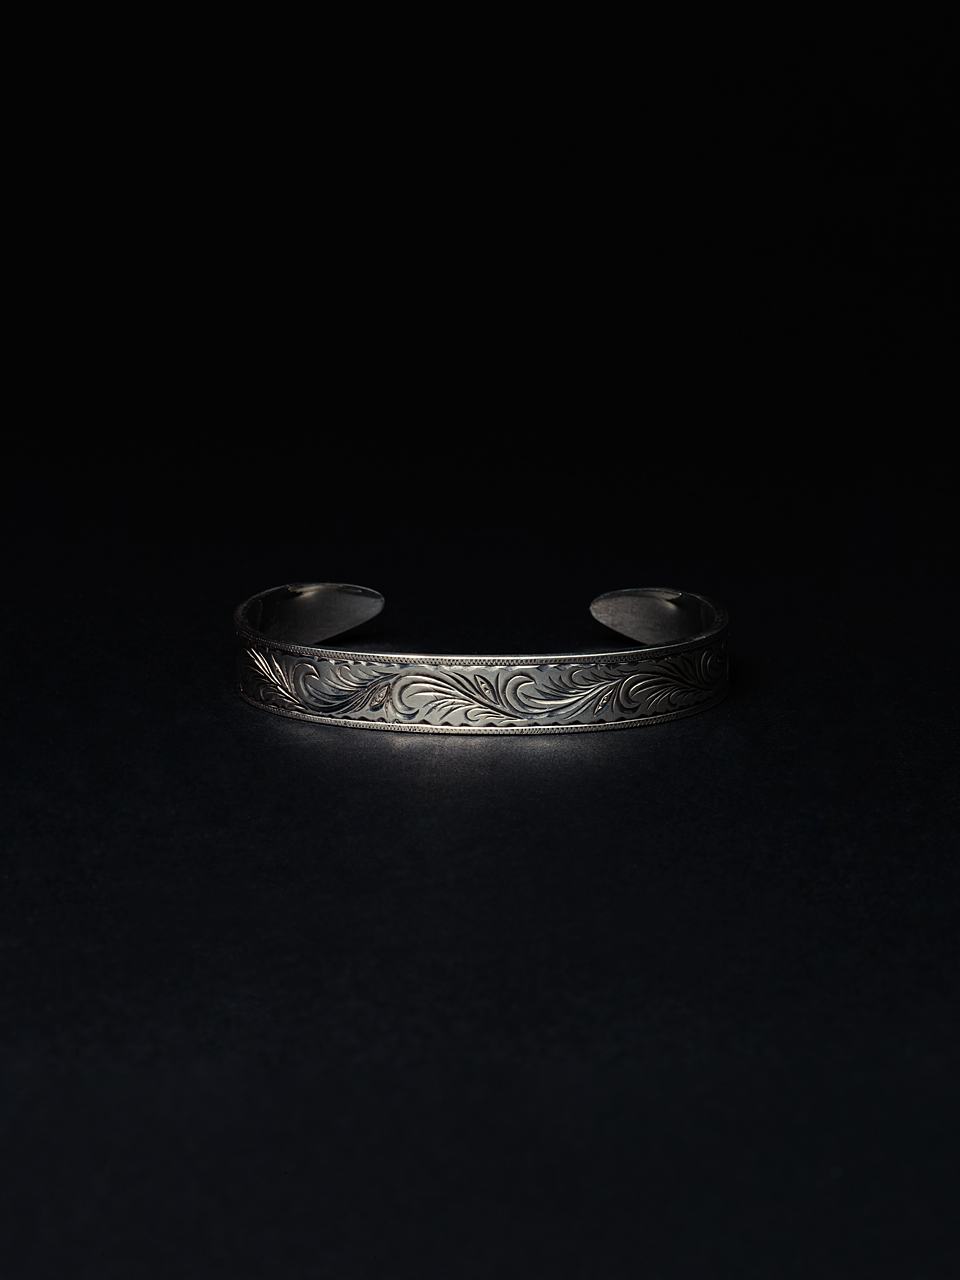 ANTIDOTE BUYERS CLUB Engraved Bangle